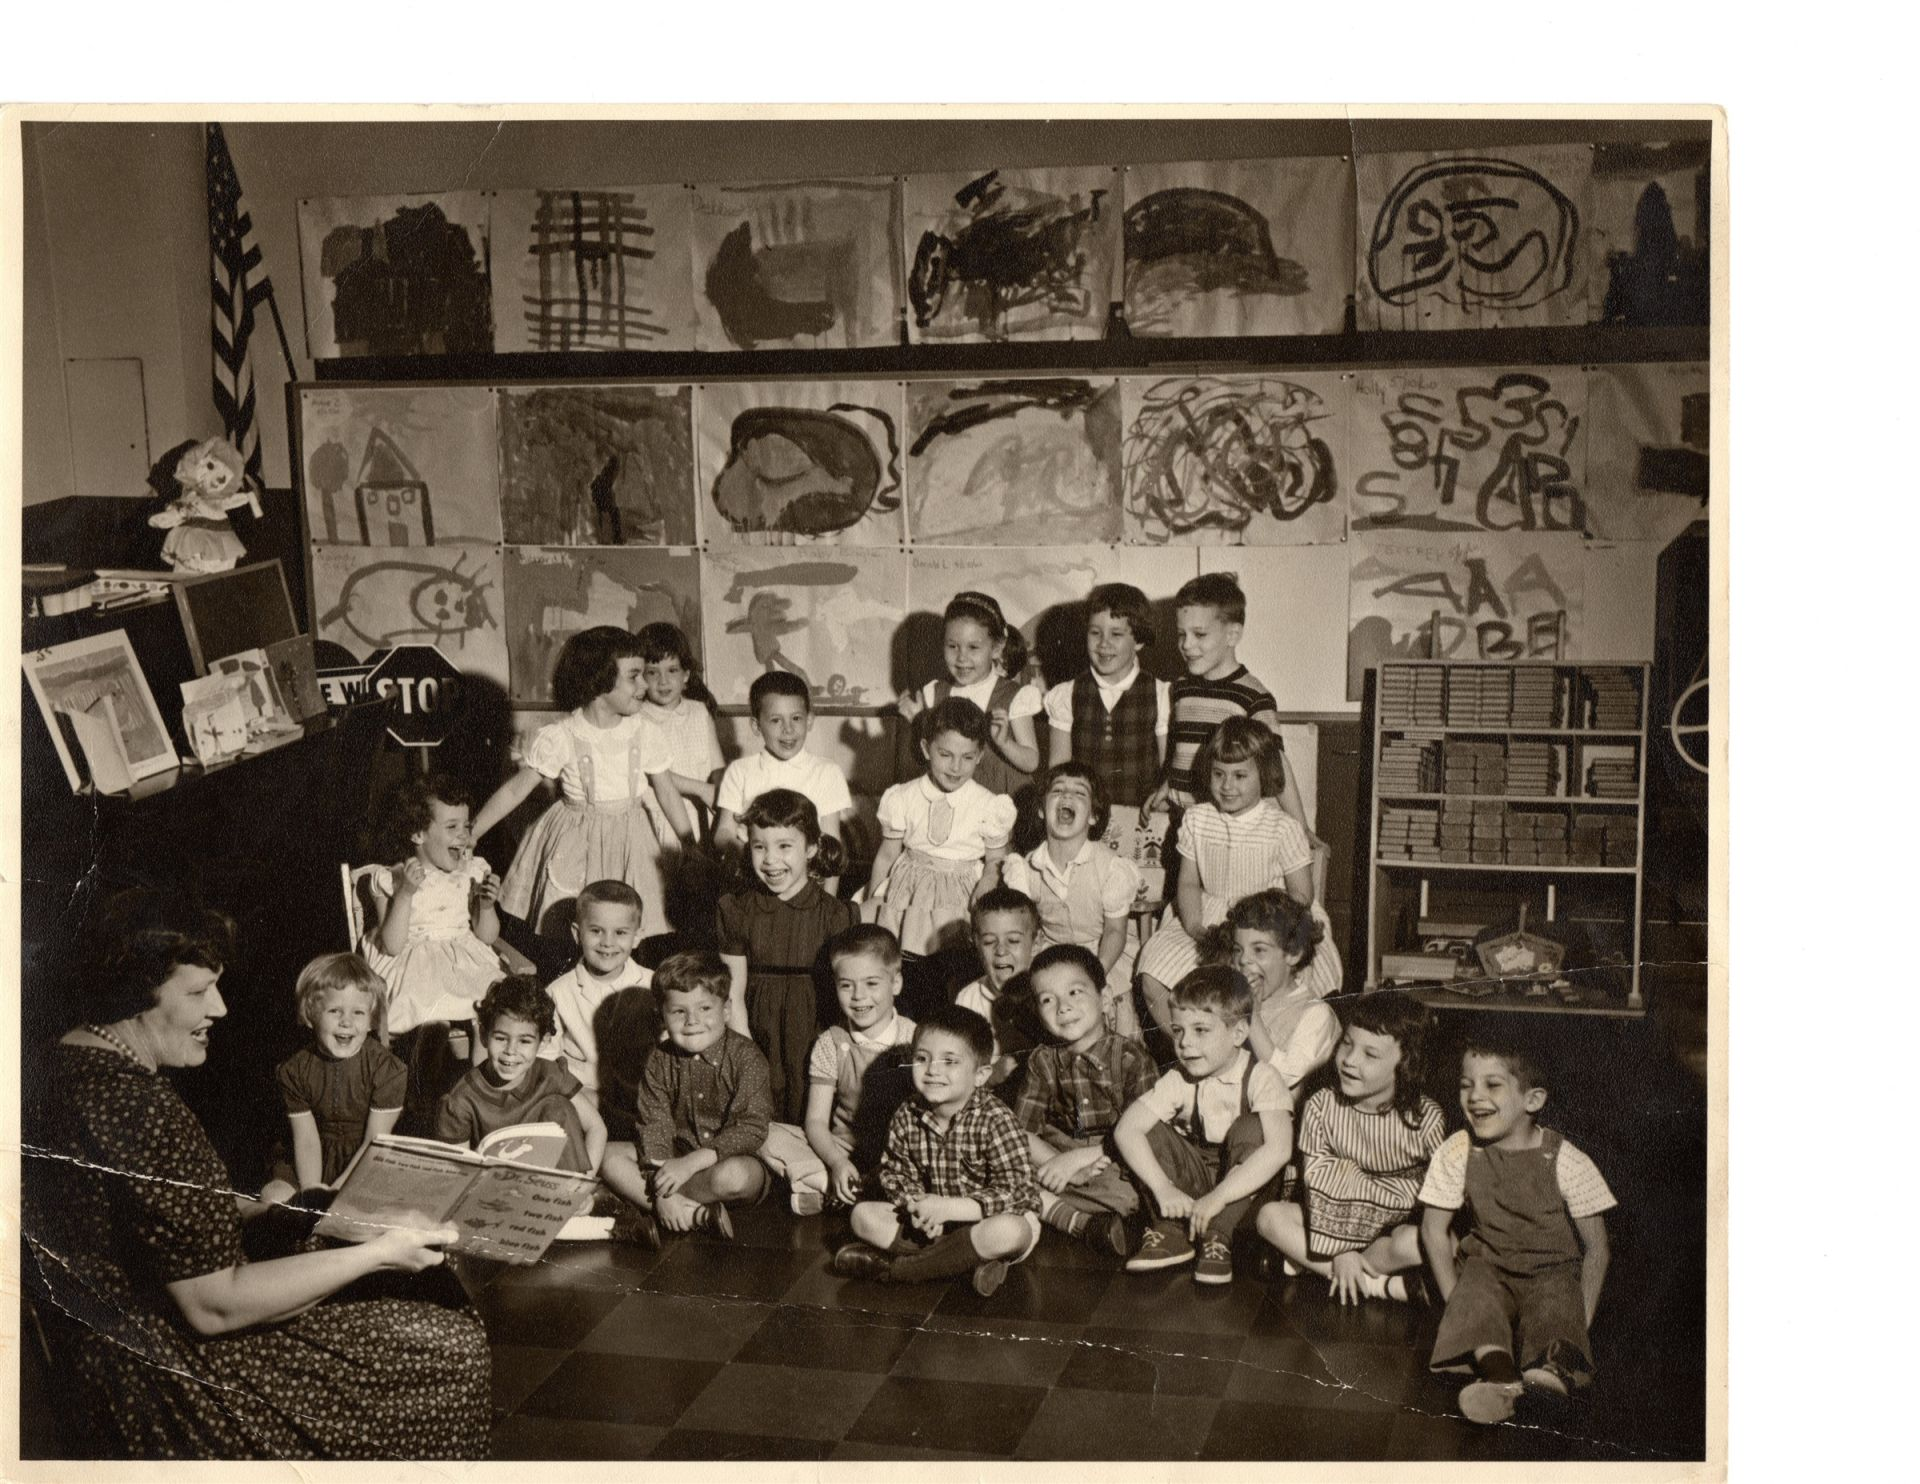 HCES Class of 1966 - Kindergarten, Miss Czinner, Spring 1960